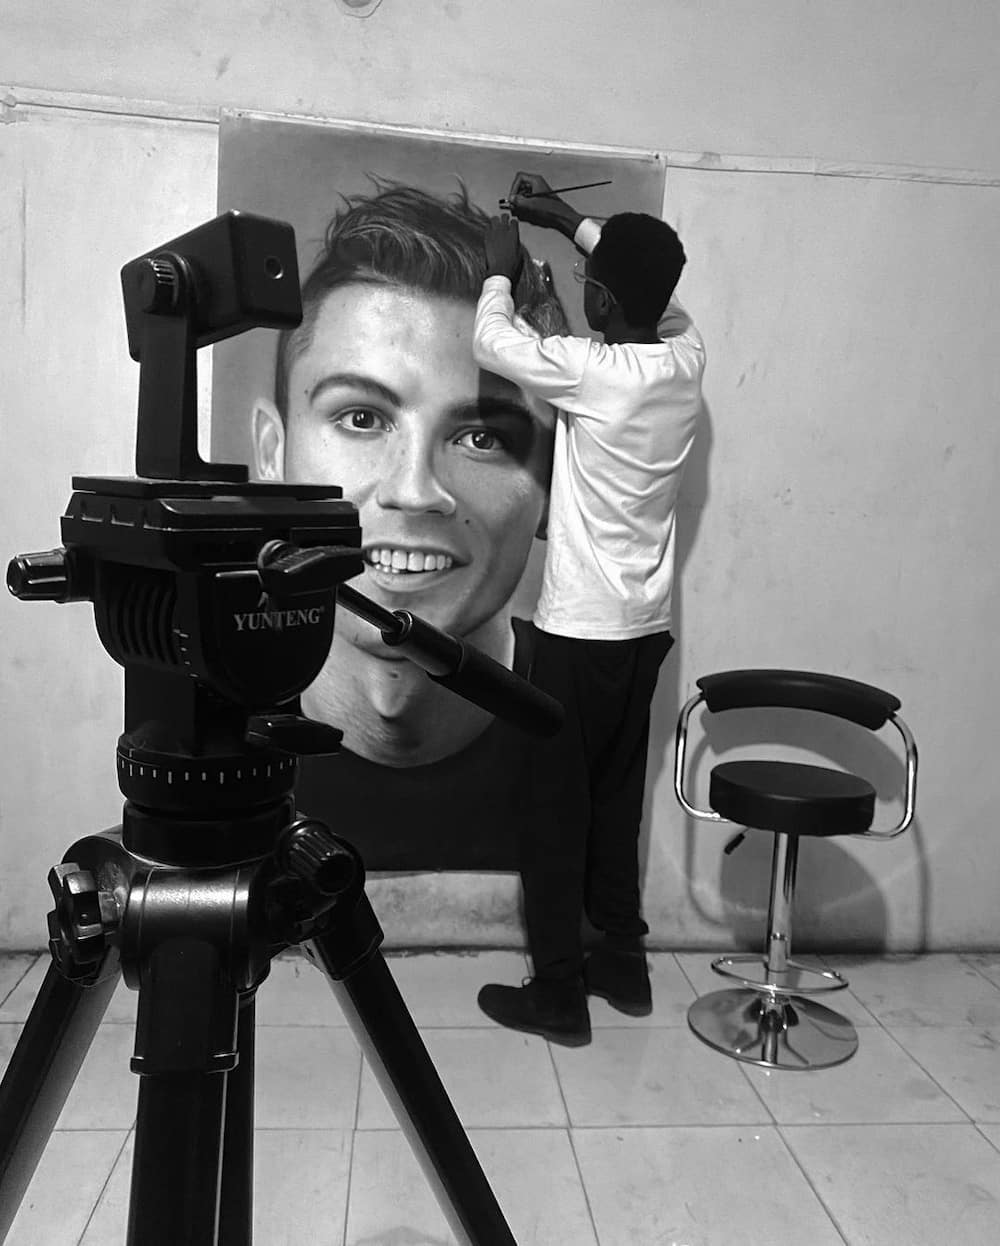 Nigerian talented artist paints adorable picture of Cristiano Ronaldo within 75 hours